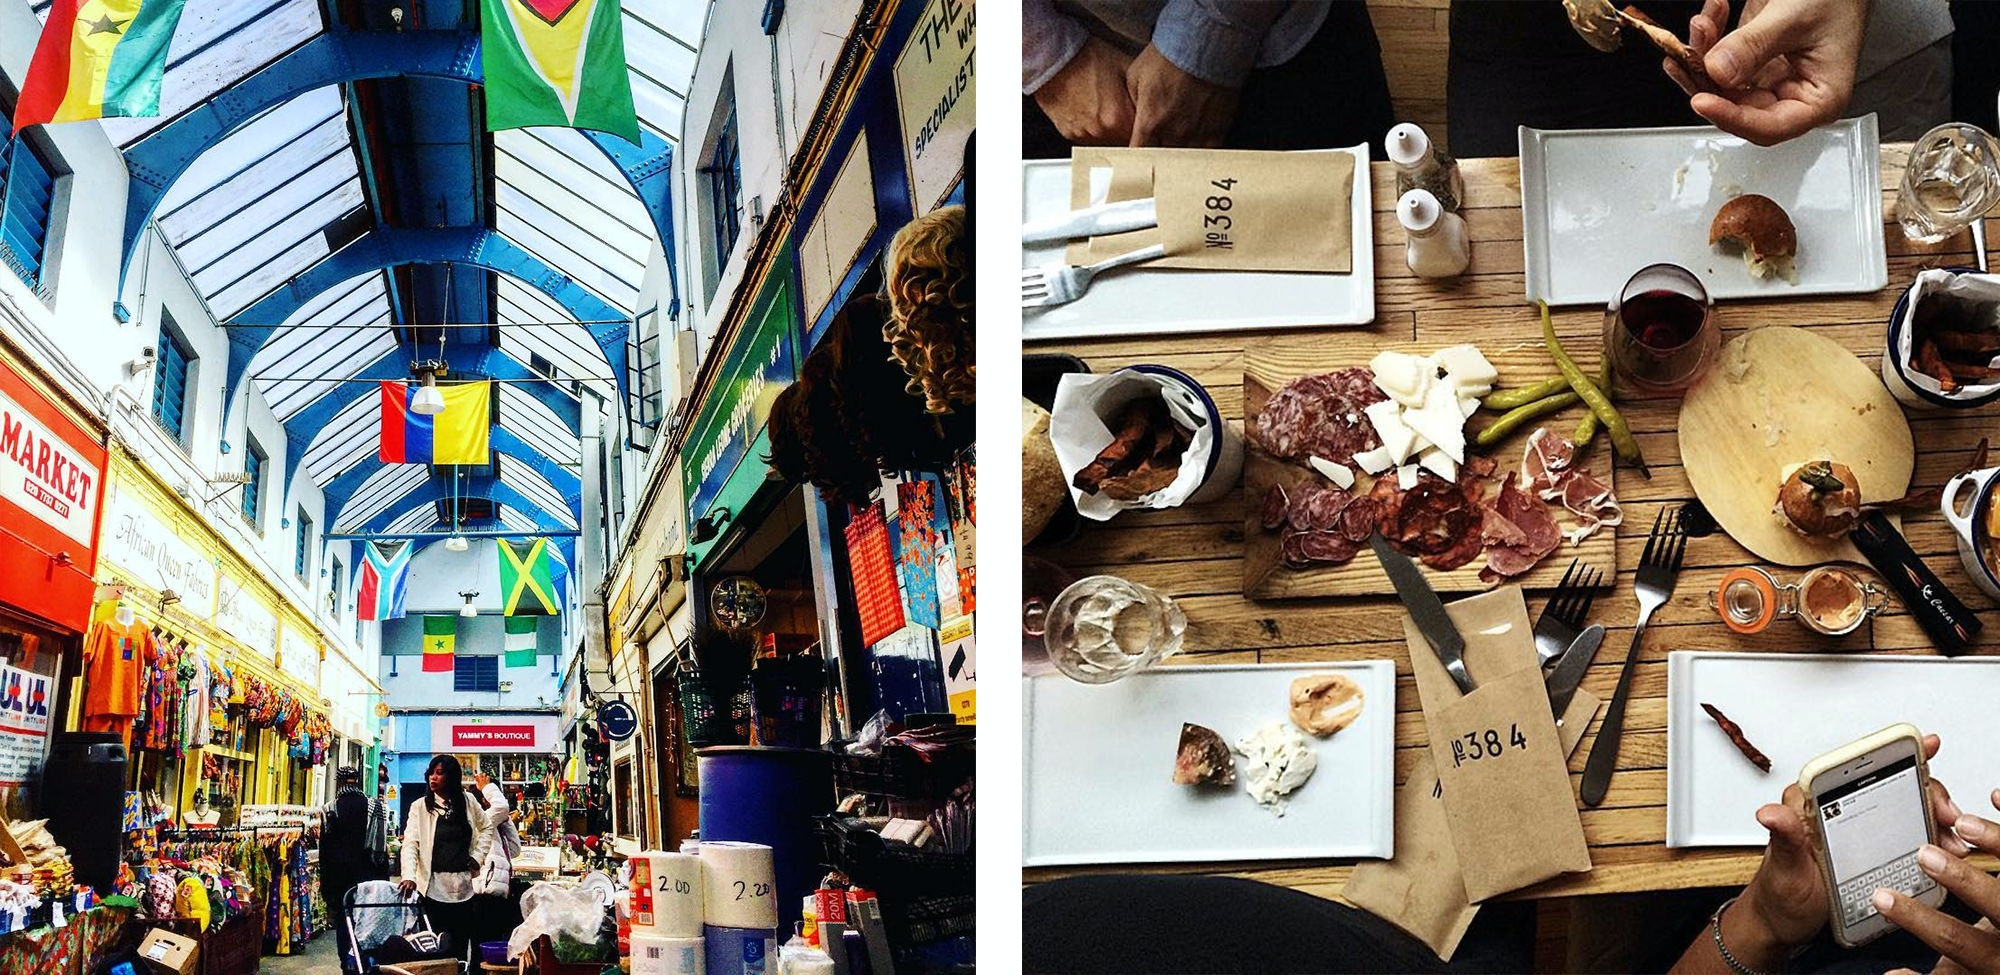 Brixton is the new up and coming area for young adults in London, be sure to head here for some music and food from around the world